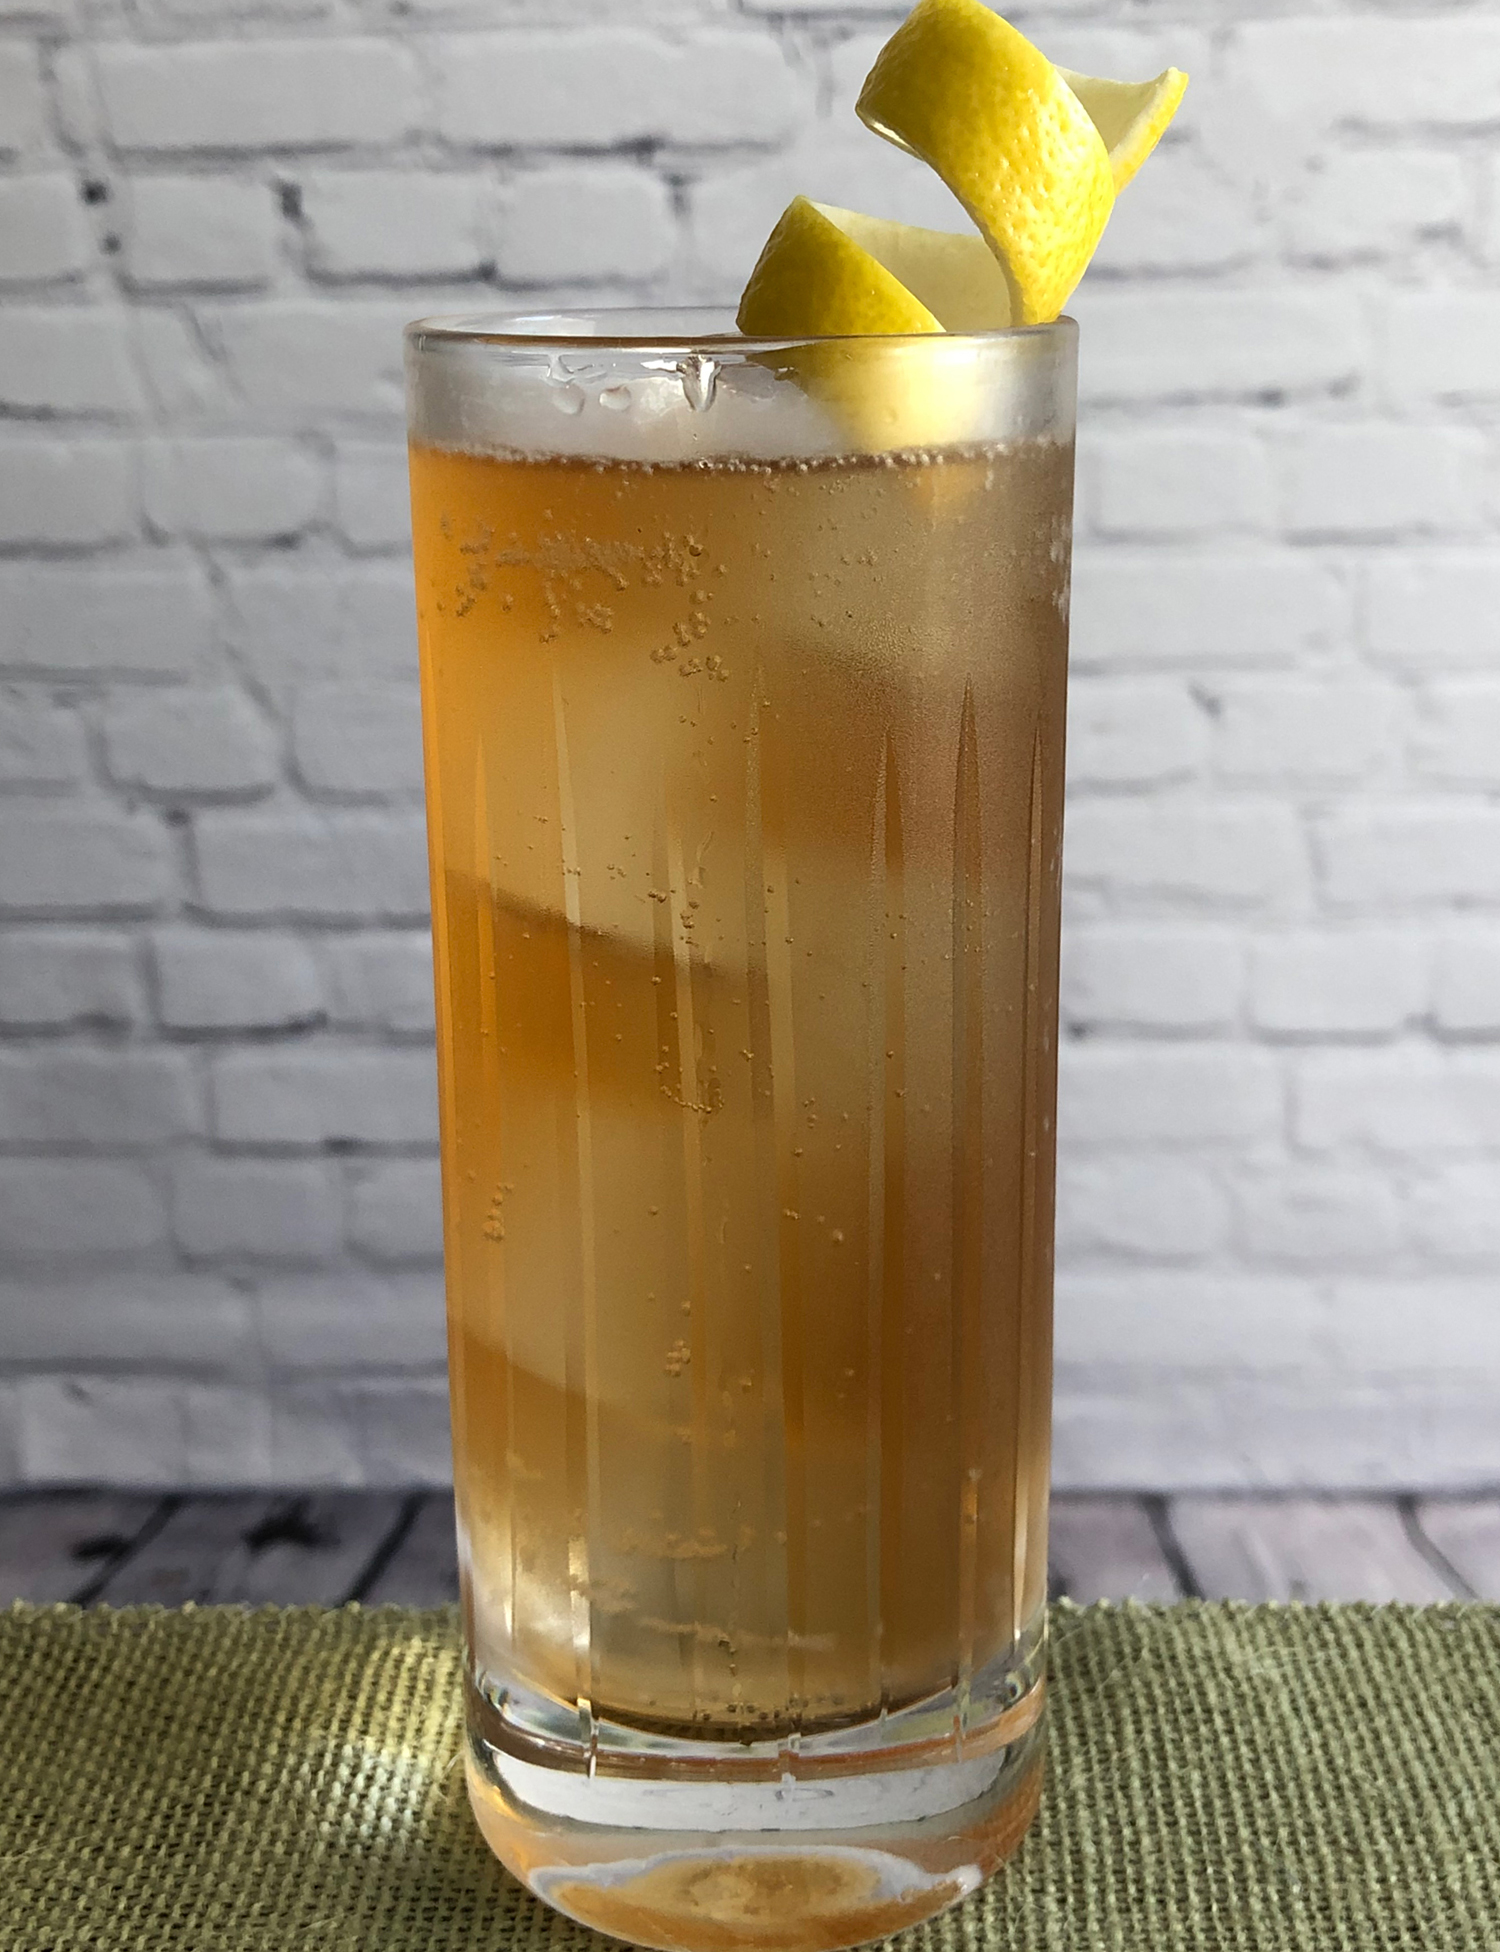 An example of the Shikoku, the mixed drink (cocktail), by Charles Coykendall, Benedetto, Cambridge, MA, featuring soda water, japanese whisky, and Mattei Cap Corse Rouge Quinquina; photo by Lee Edwards